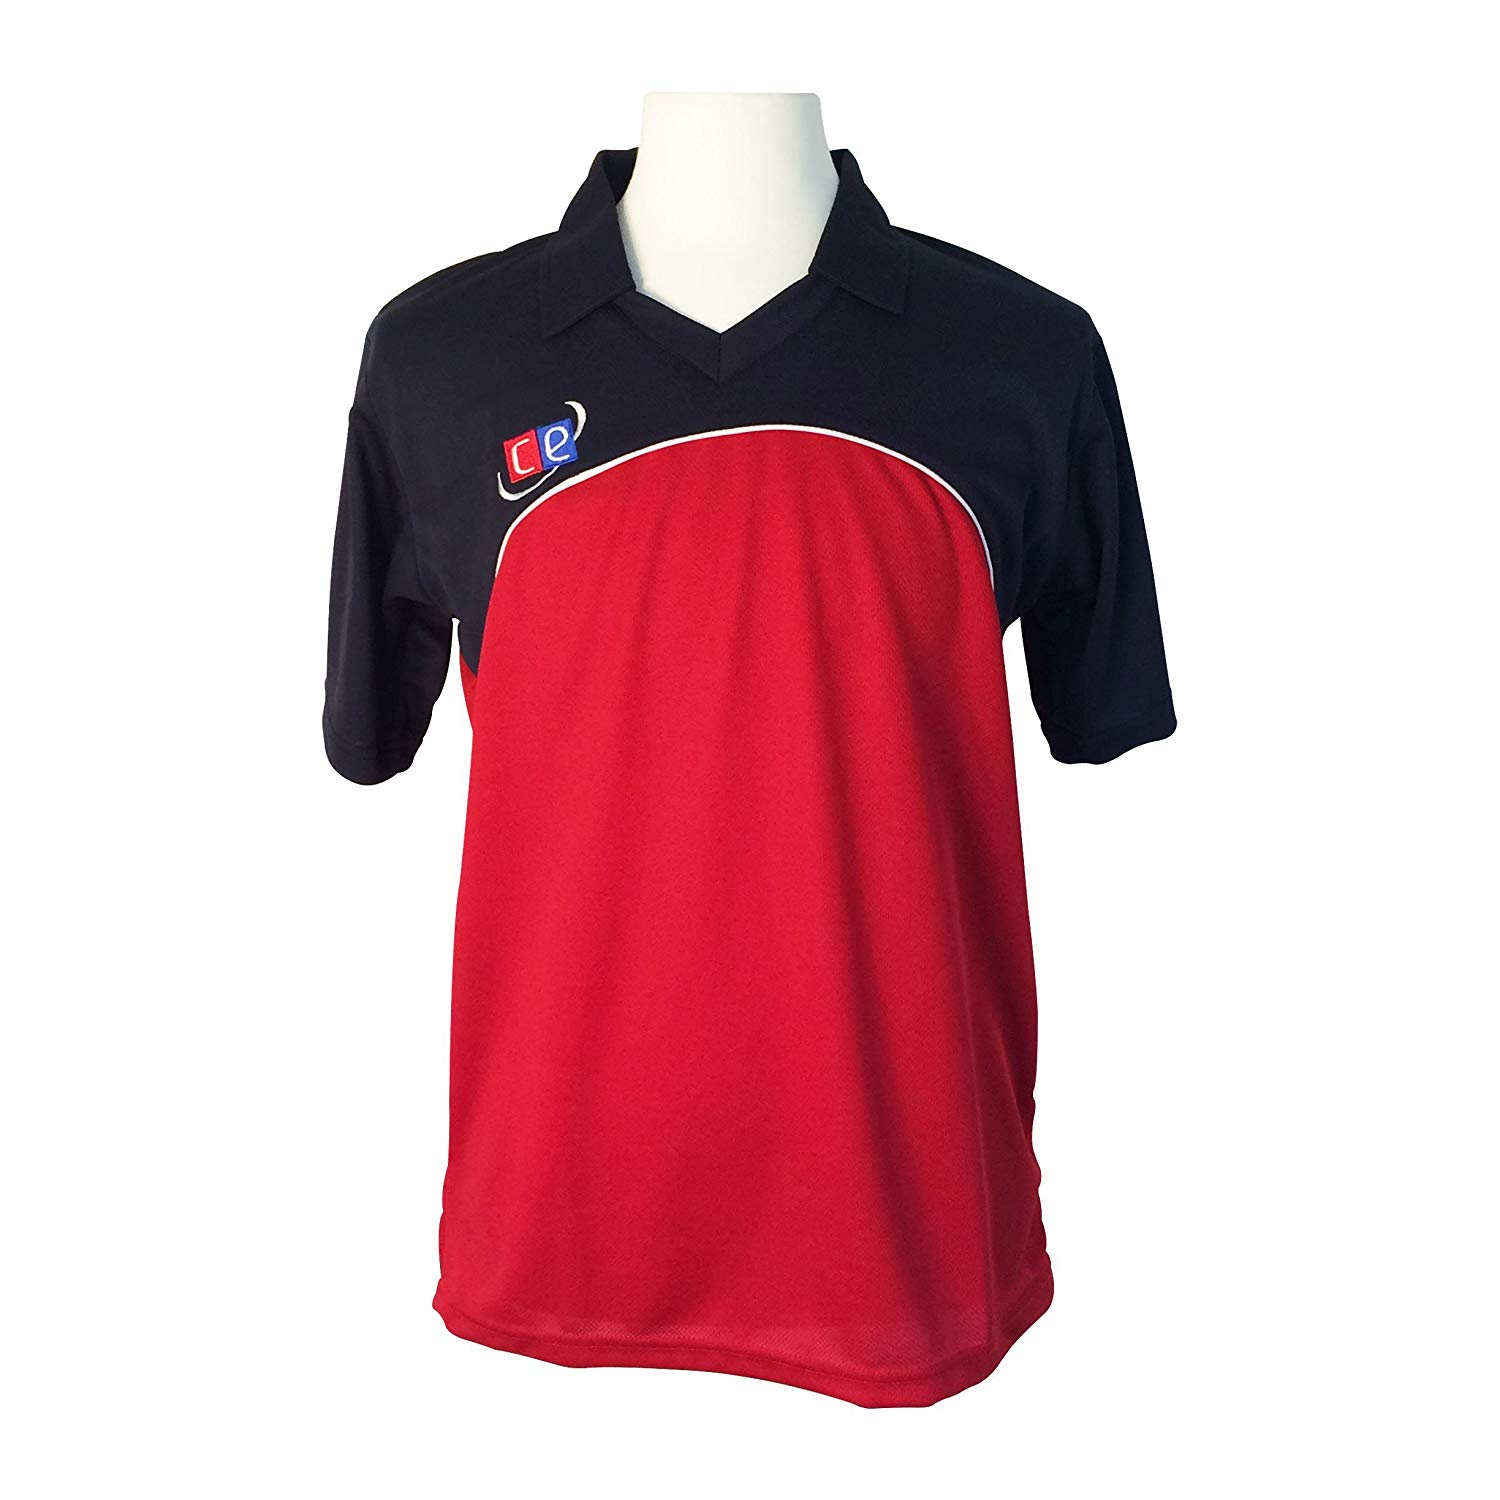 CE Colored Cricket Kit Shirts & Pants - England Colors Navy Blue & Red - Half Sleeves Cricket Jersey & Pants by Cricket Equipment USA (Shirts, X-Large)